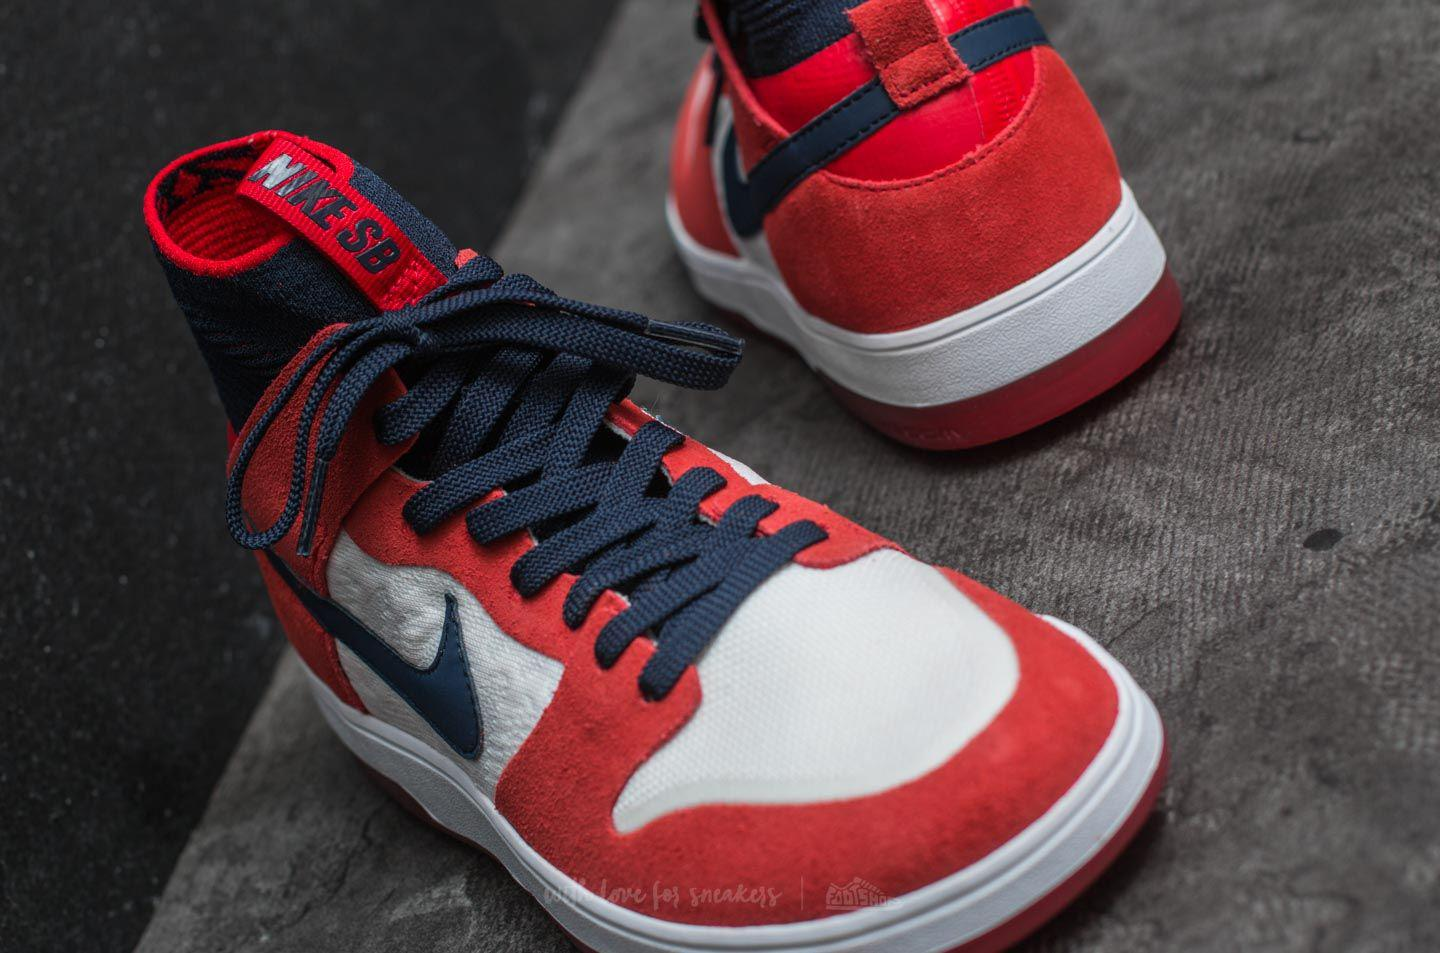 90d7470ac473 Lyst - Nike Sb Zoom Dunk High Elite University Red  College Navy in ...